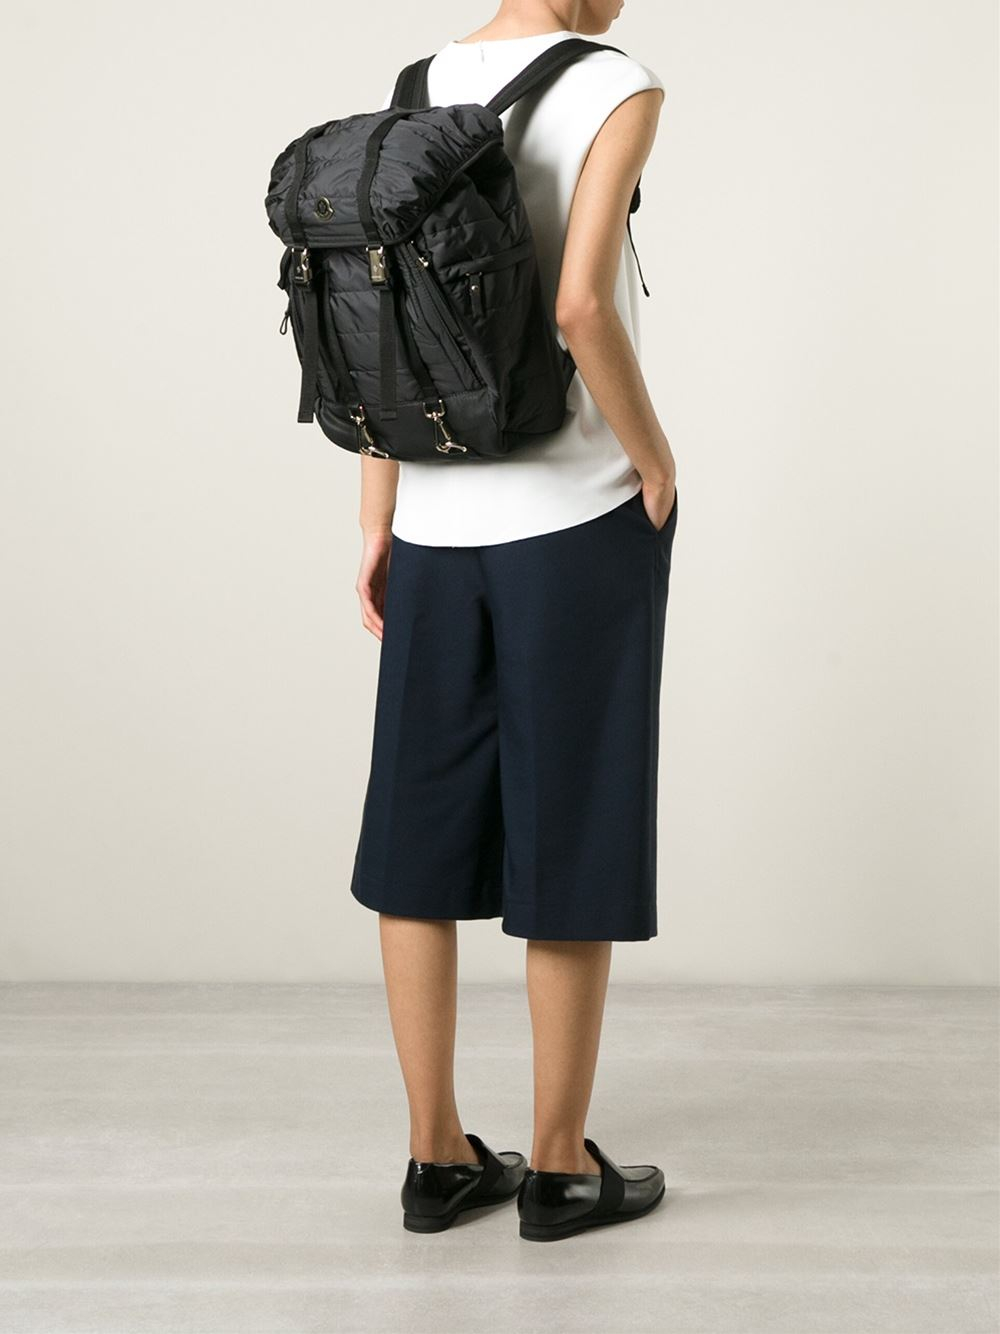 Moncler Quilted Backpack in Black